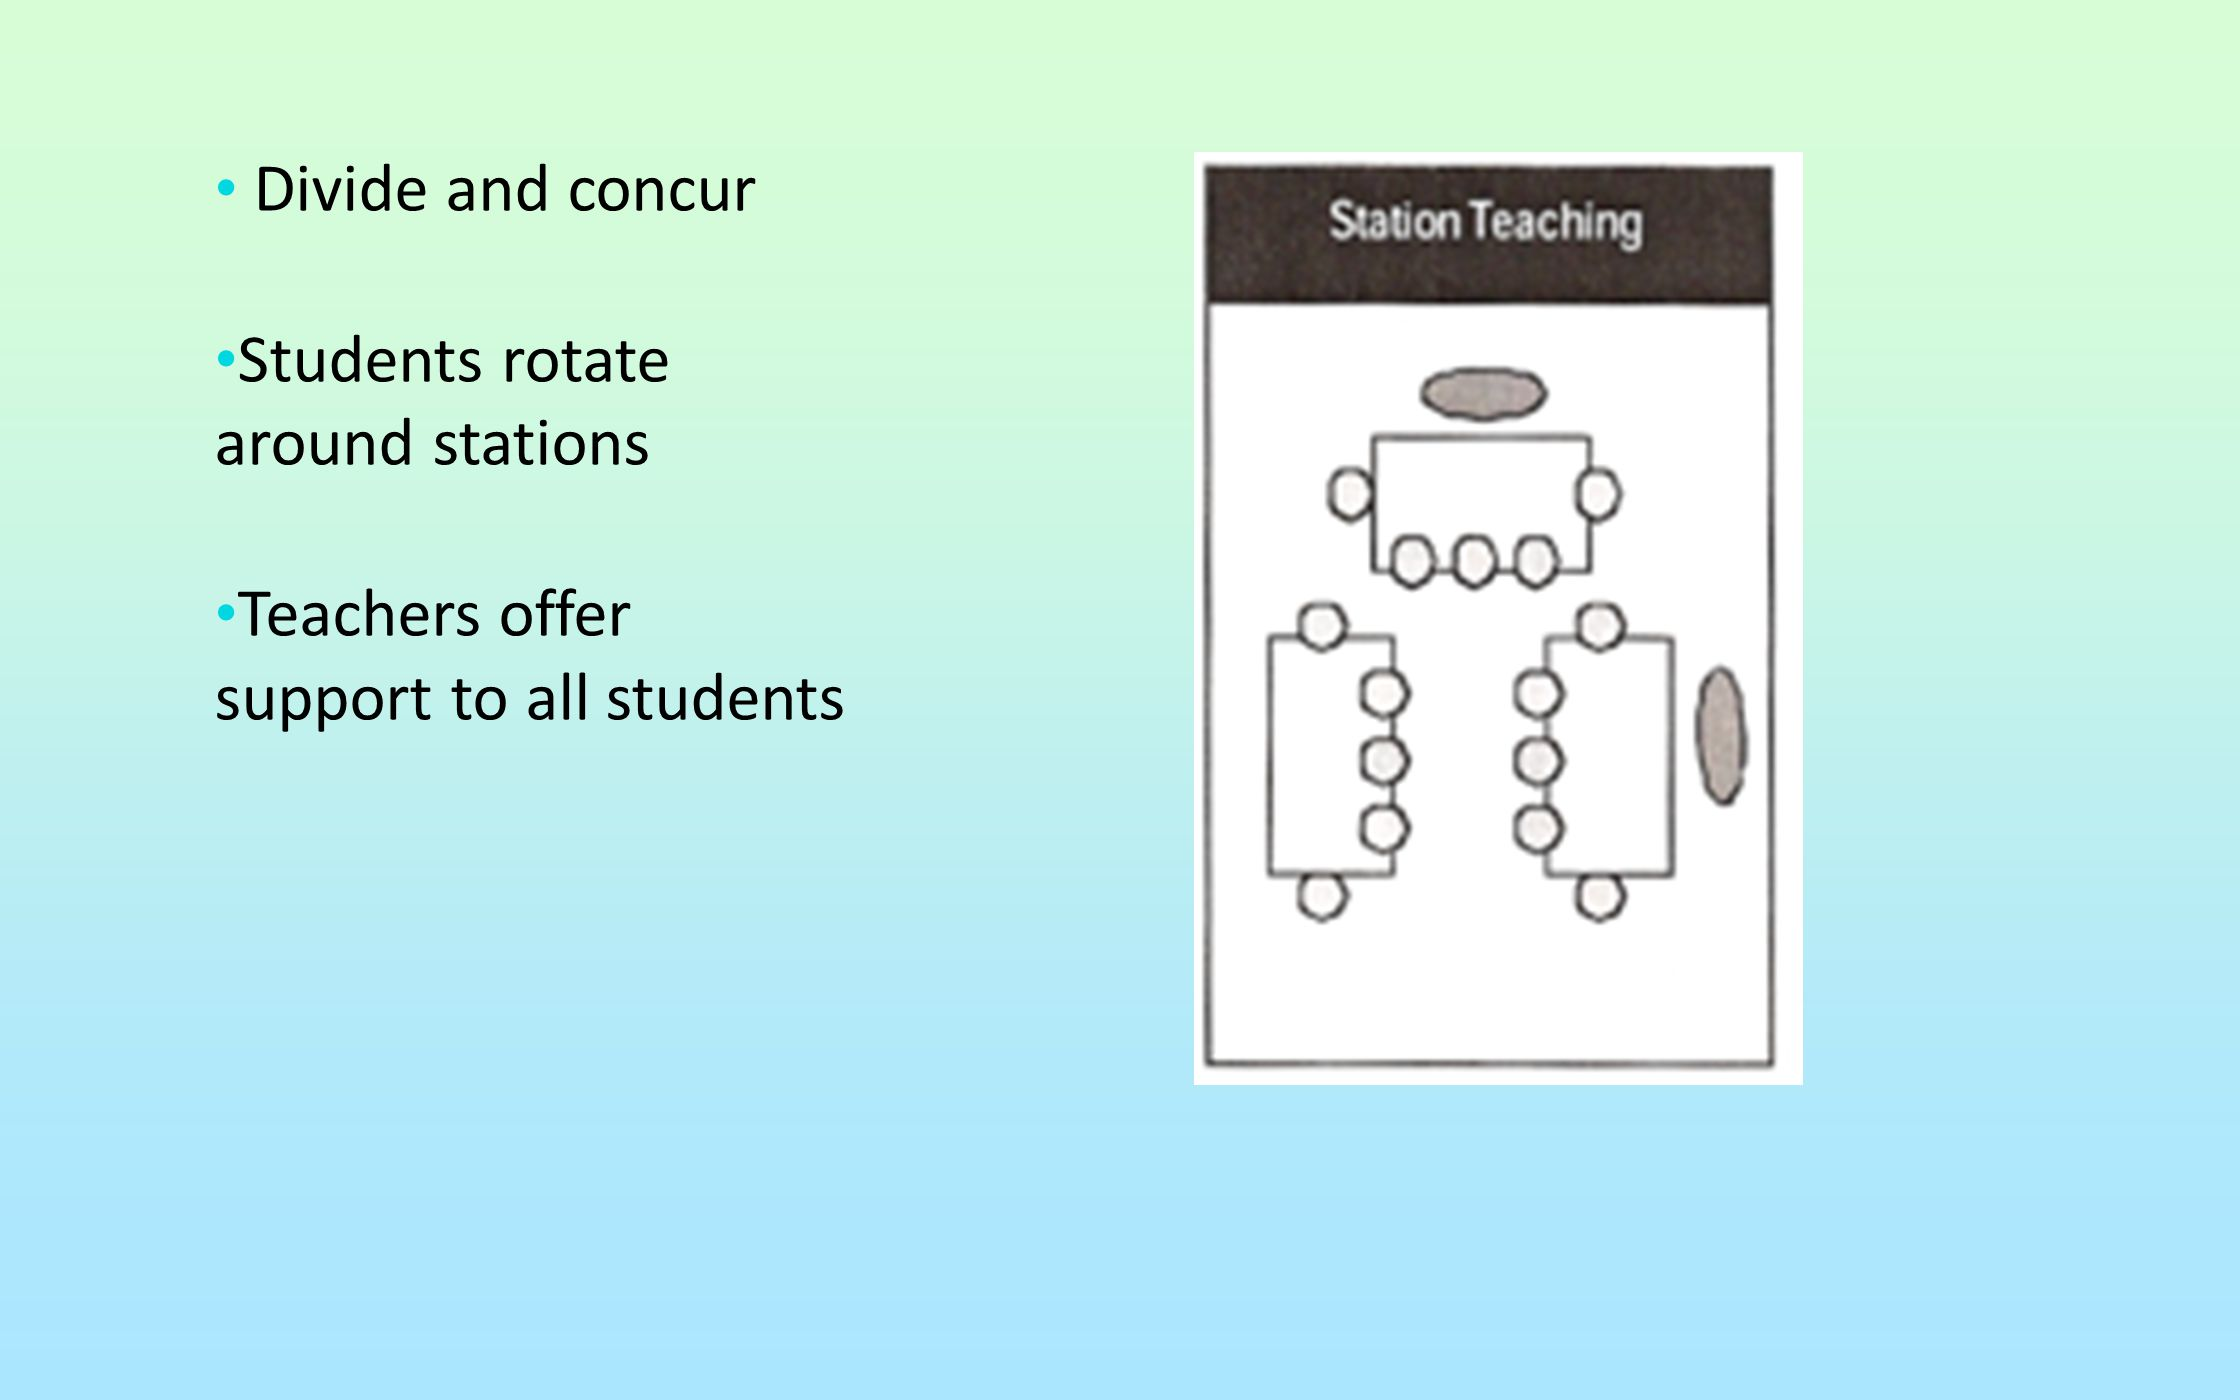 Students rotate around stations